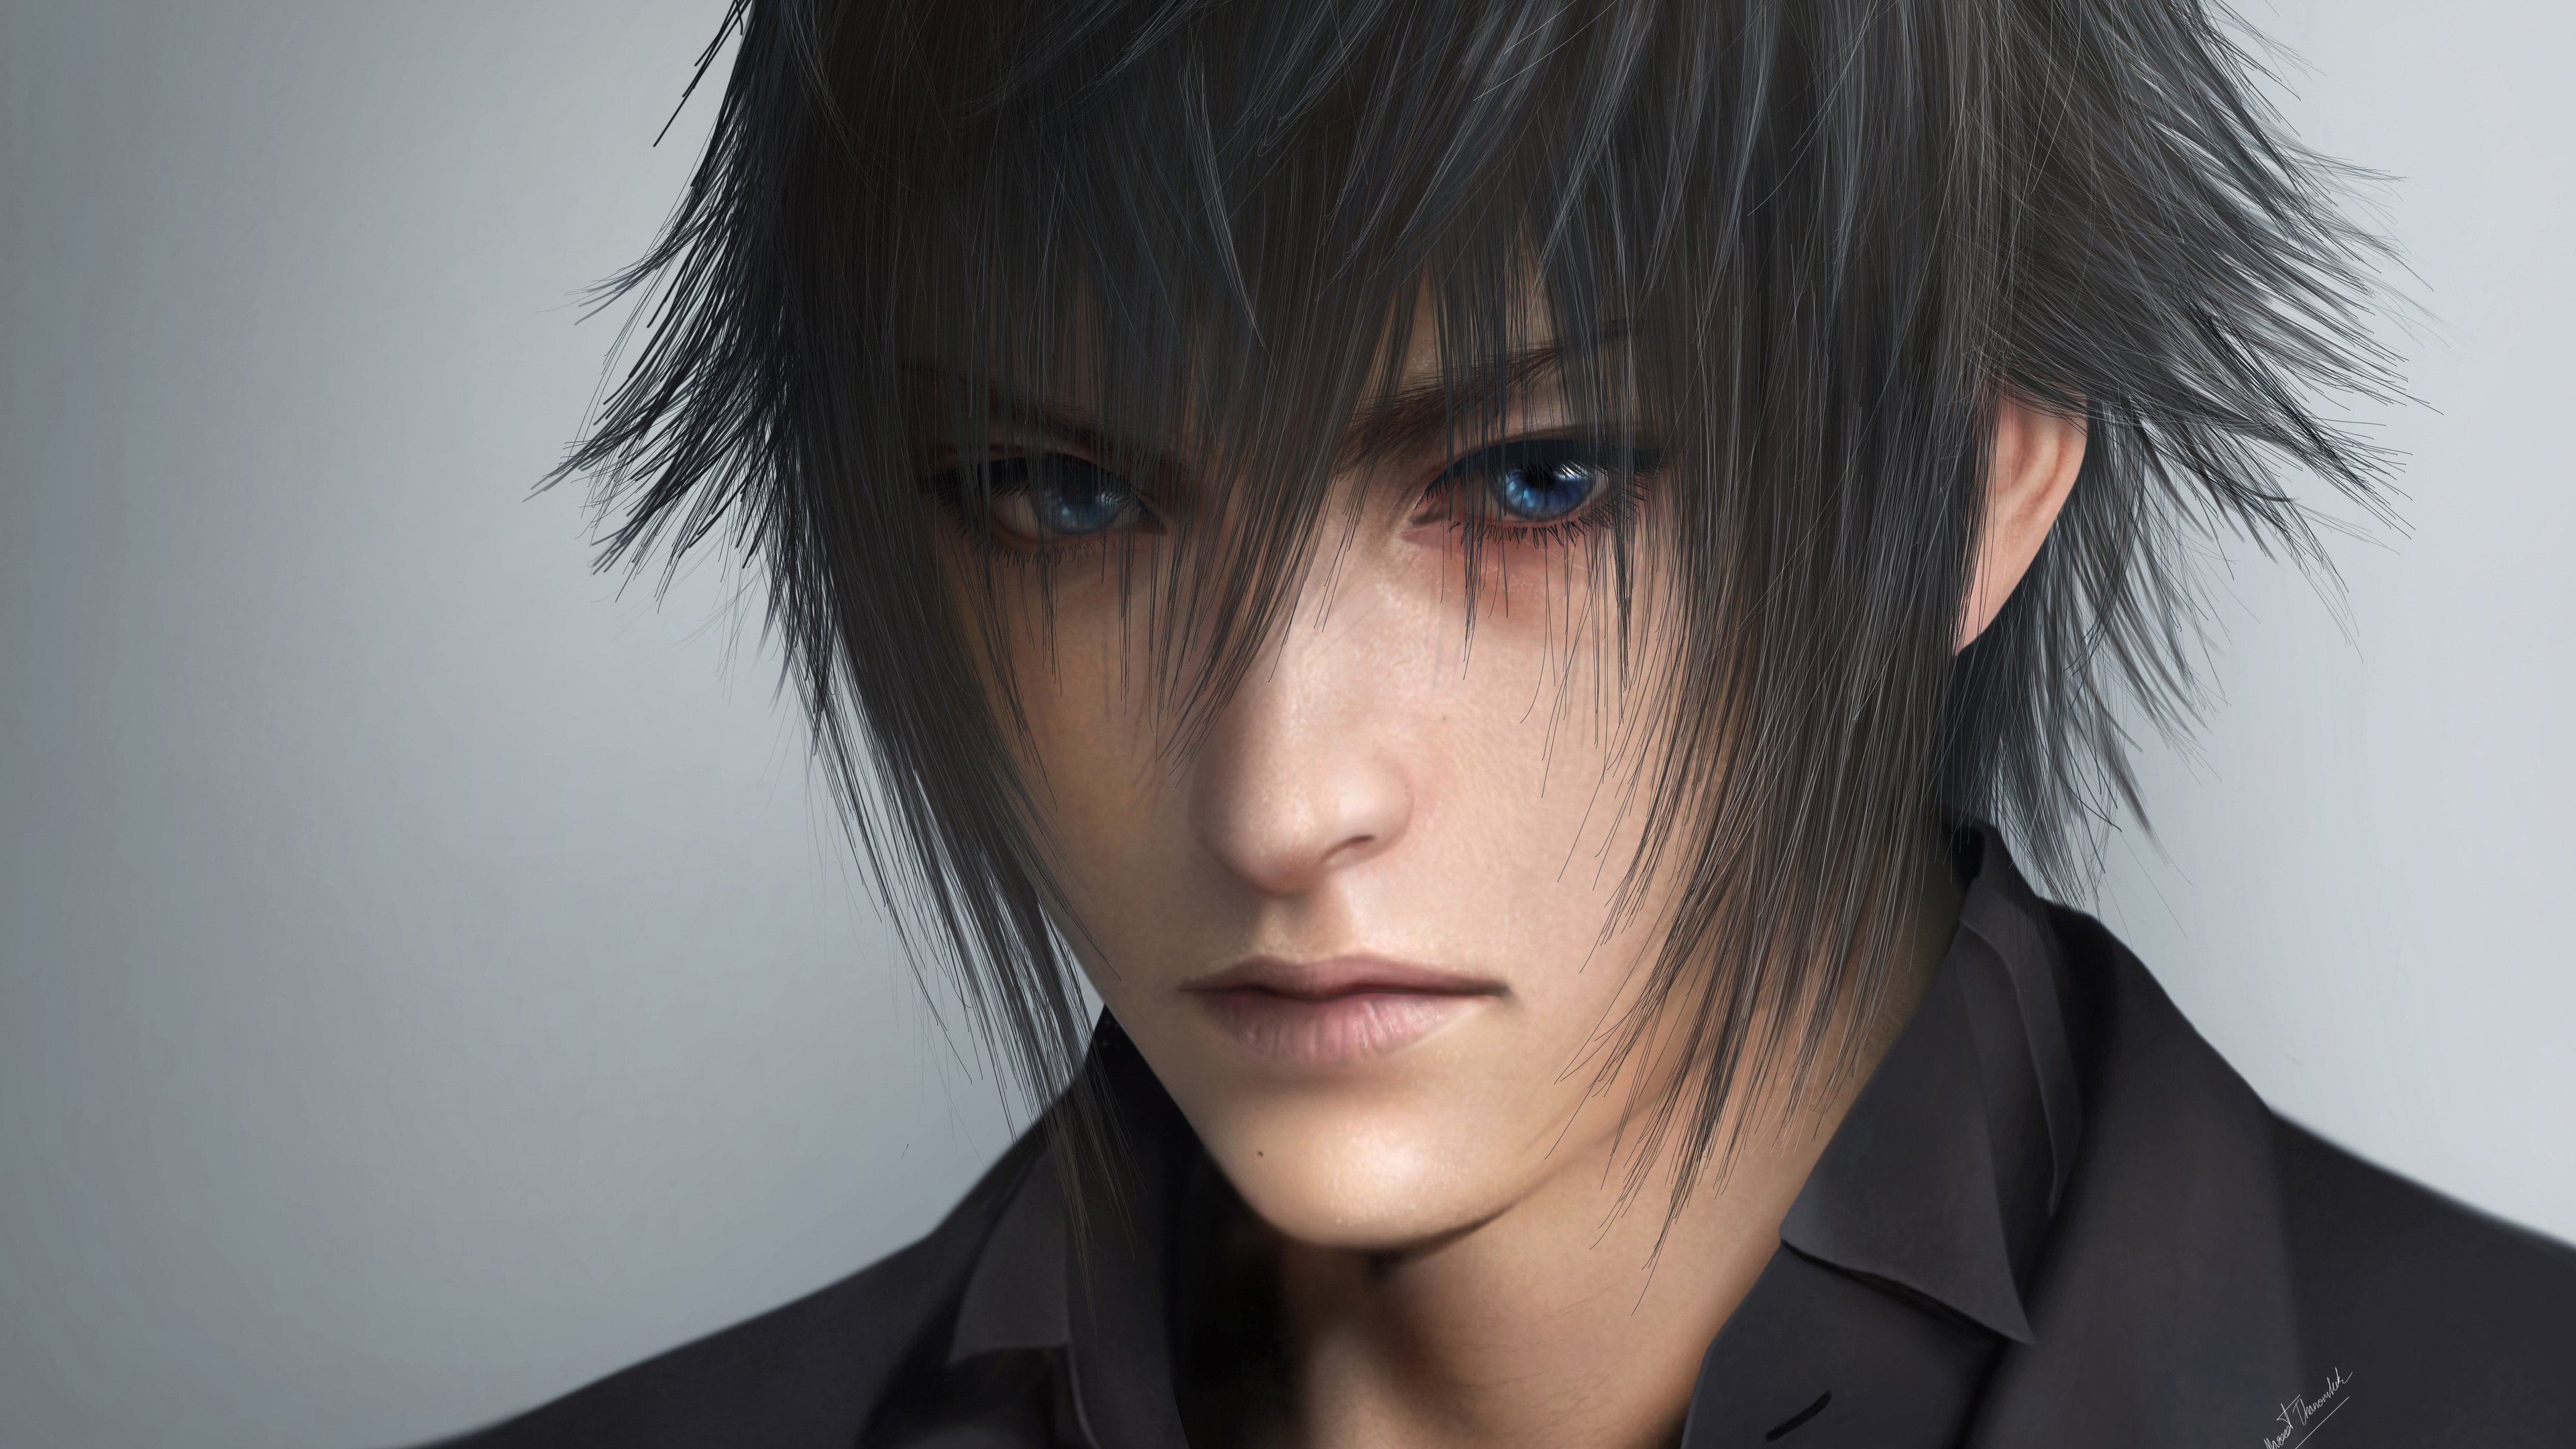 ffxv prince noctis lucis caelum artwork 5k 1537690720 - Ffxv Prince Noctis Lucis Caelum Artwork 5k - hd-wallpapers, games wallpapers, final fantasy xv wallpapers, final fantasy wallpapers, digital art wallpapers, artwork wallpapers, artstation wallpapers, artist wallpapers, 5k wallpapers, 4k-wallpapers